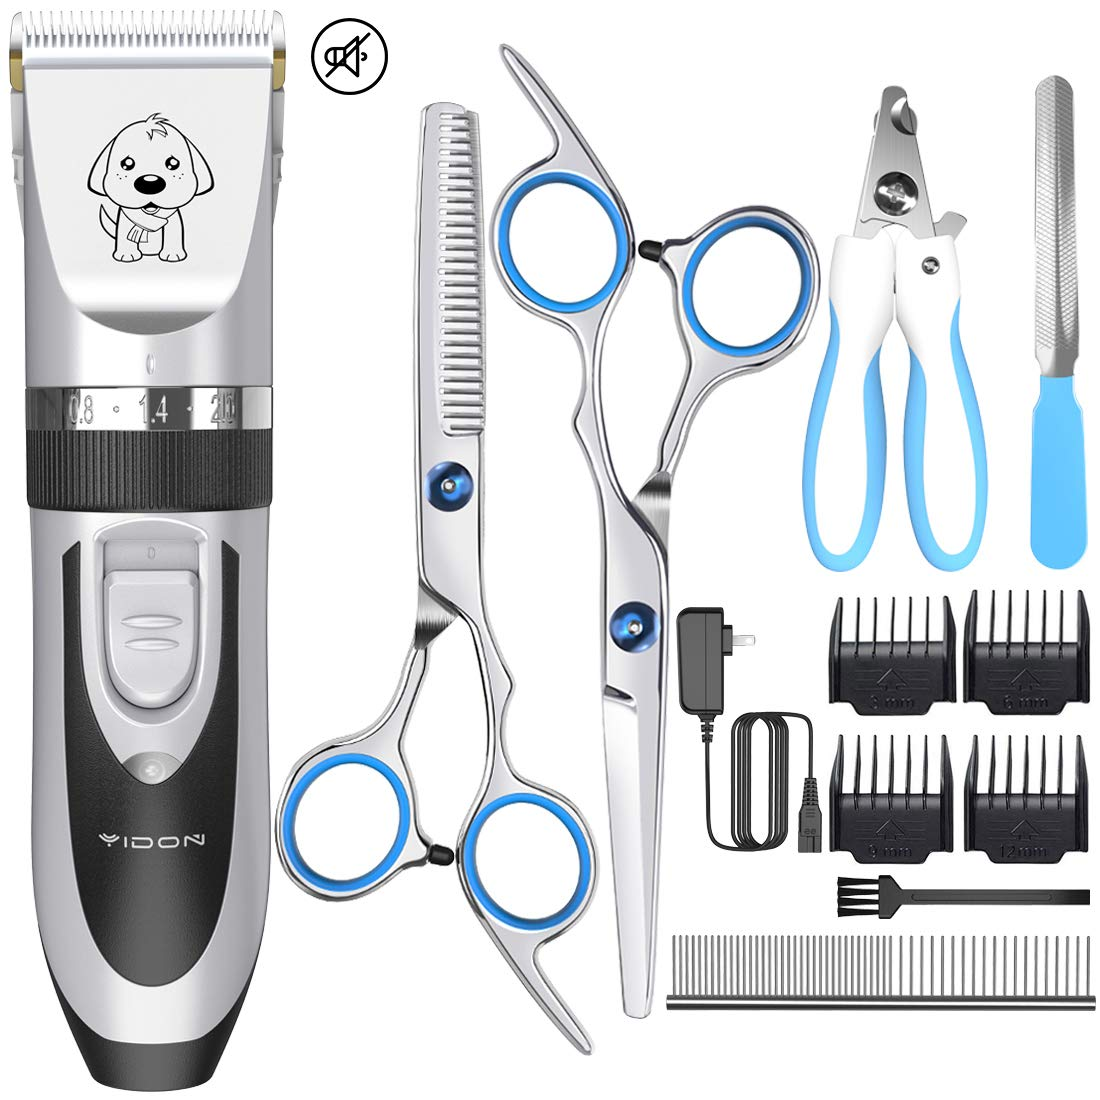 YIDON Dog Clippers, Dog Grooming kit Cordless Adjustable Pet Clippers Dog Hair Trimmer Rechargeable Dog Shears Pet Grooming Professional Hair Clippers Low Noise for Small Large Dogs,Cats,All Pets by YIDON (Image #1)